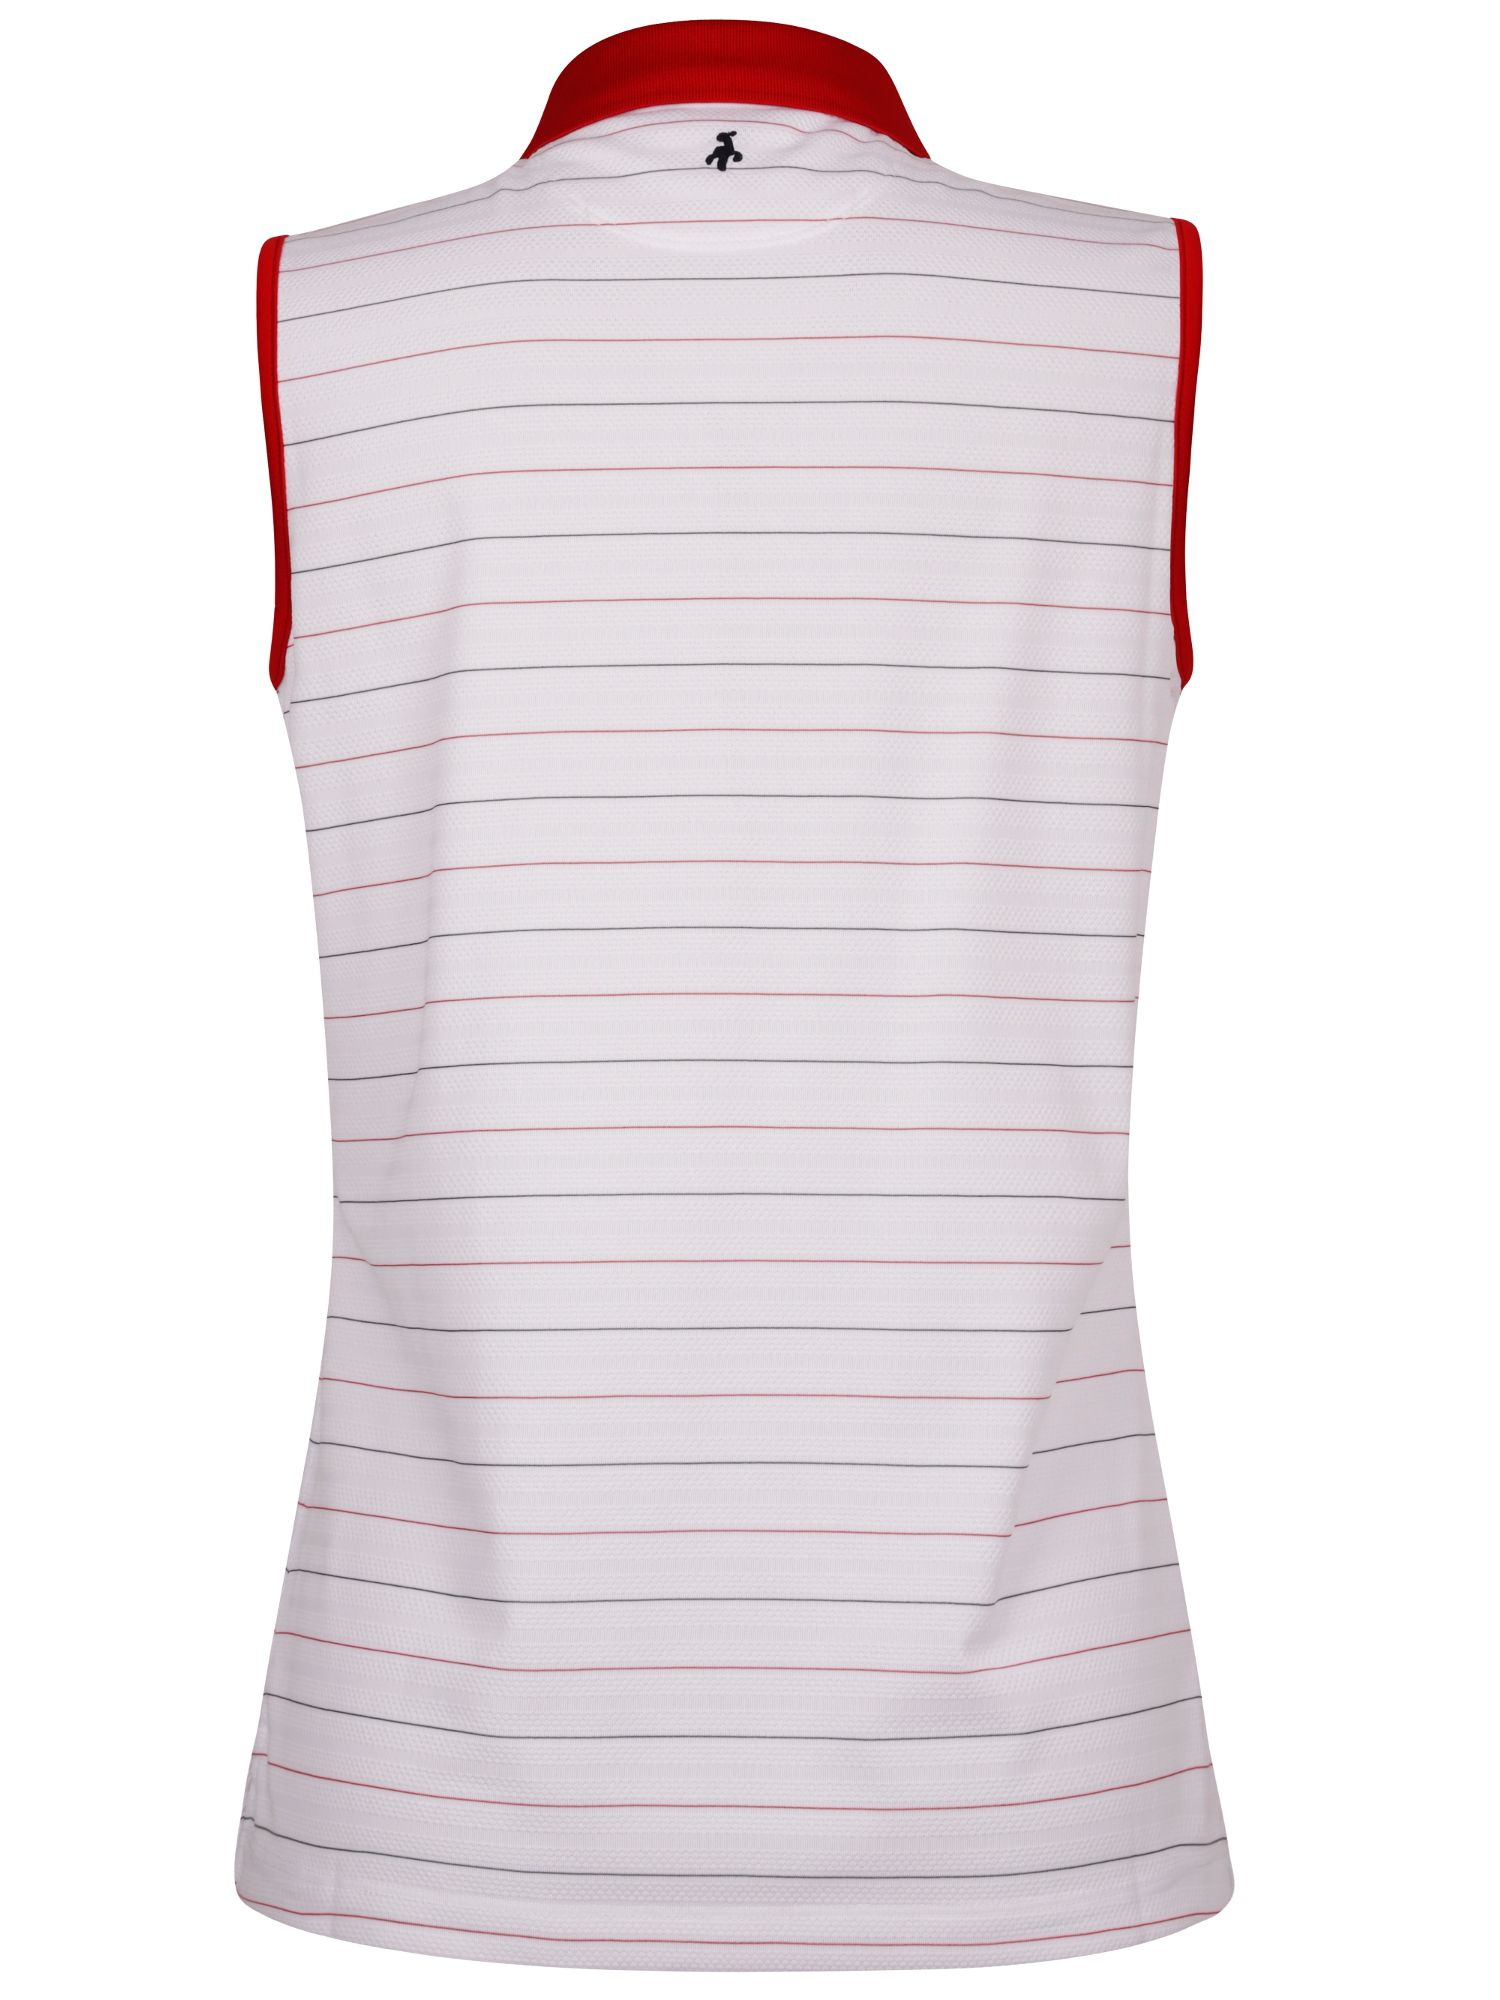 Paloma sleeveless striped shirt